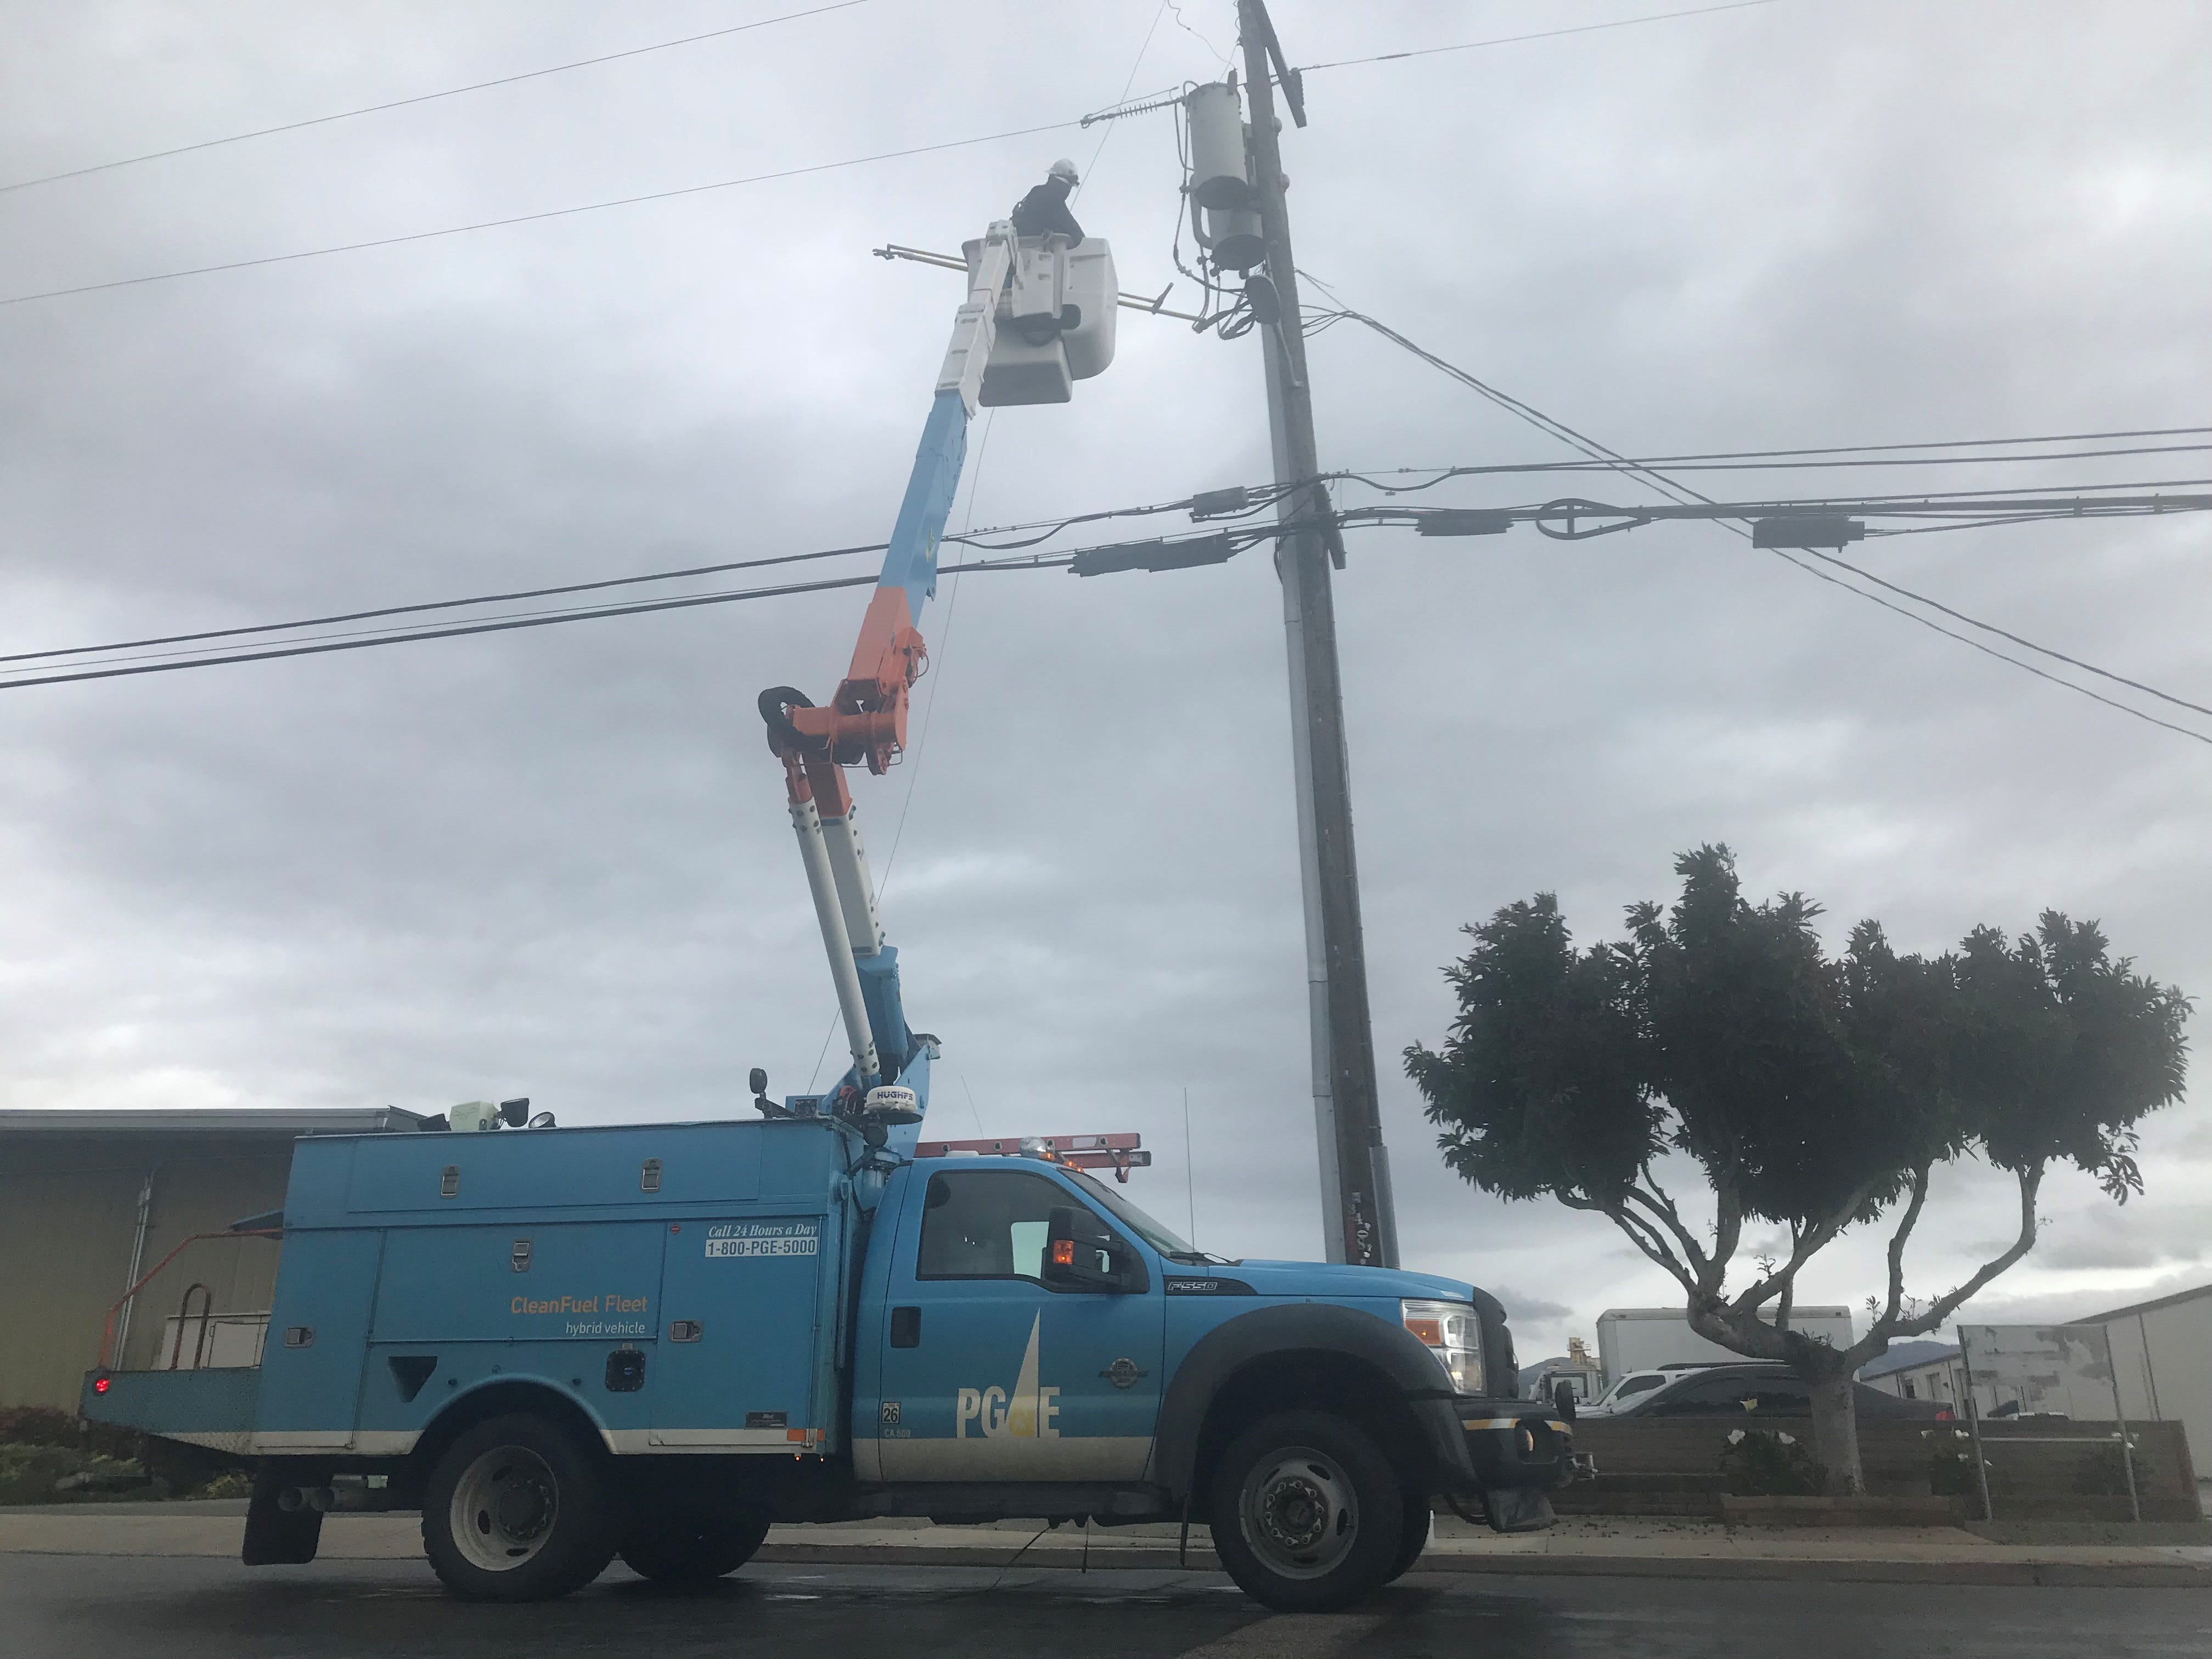 Pacific Gas and Eledctric crews respond to a power outage Feb. 19, 2019.